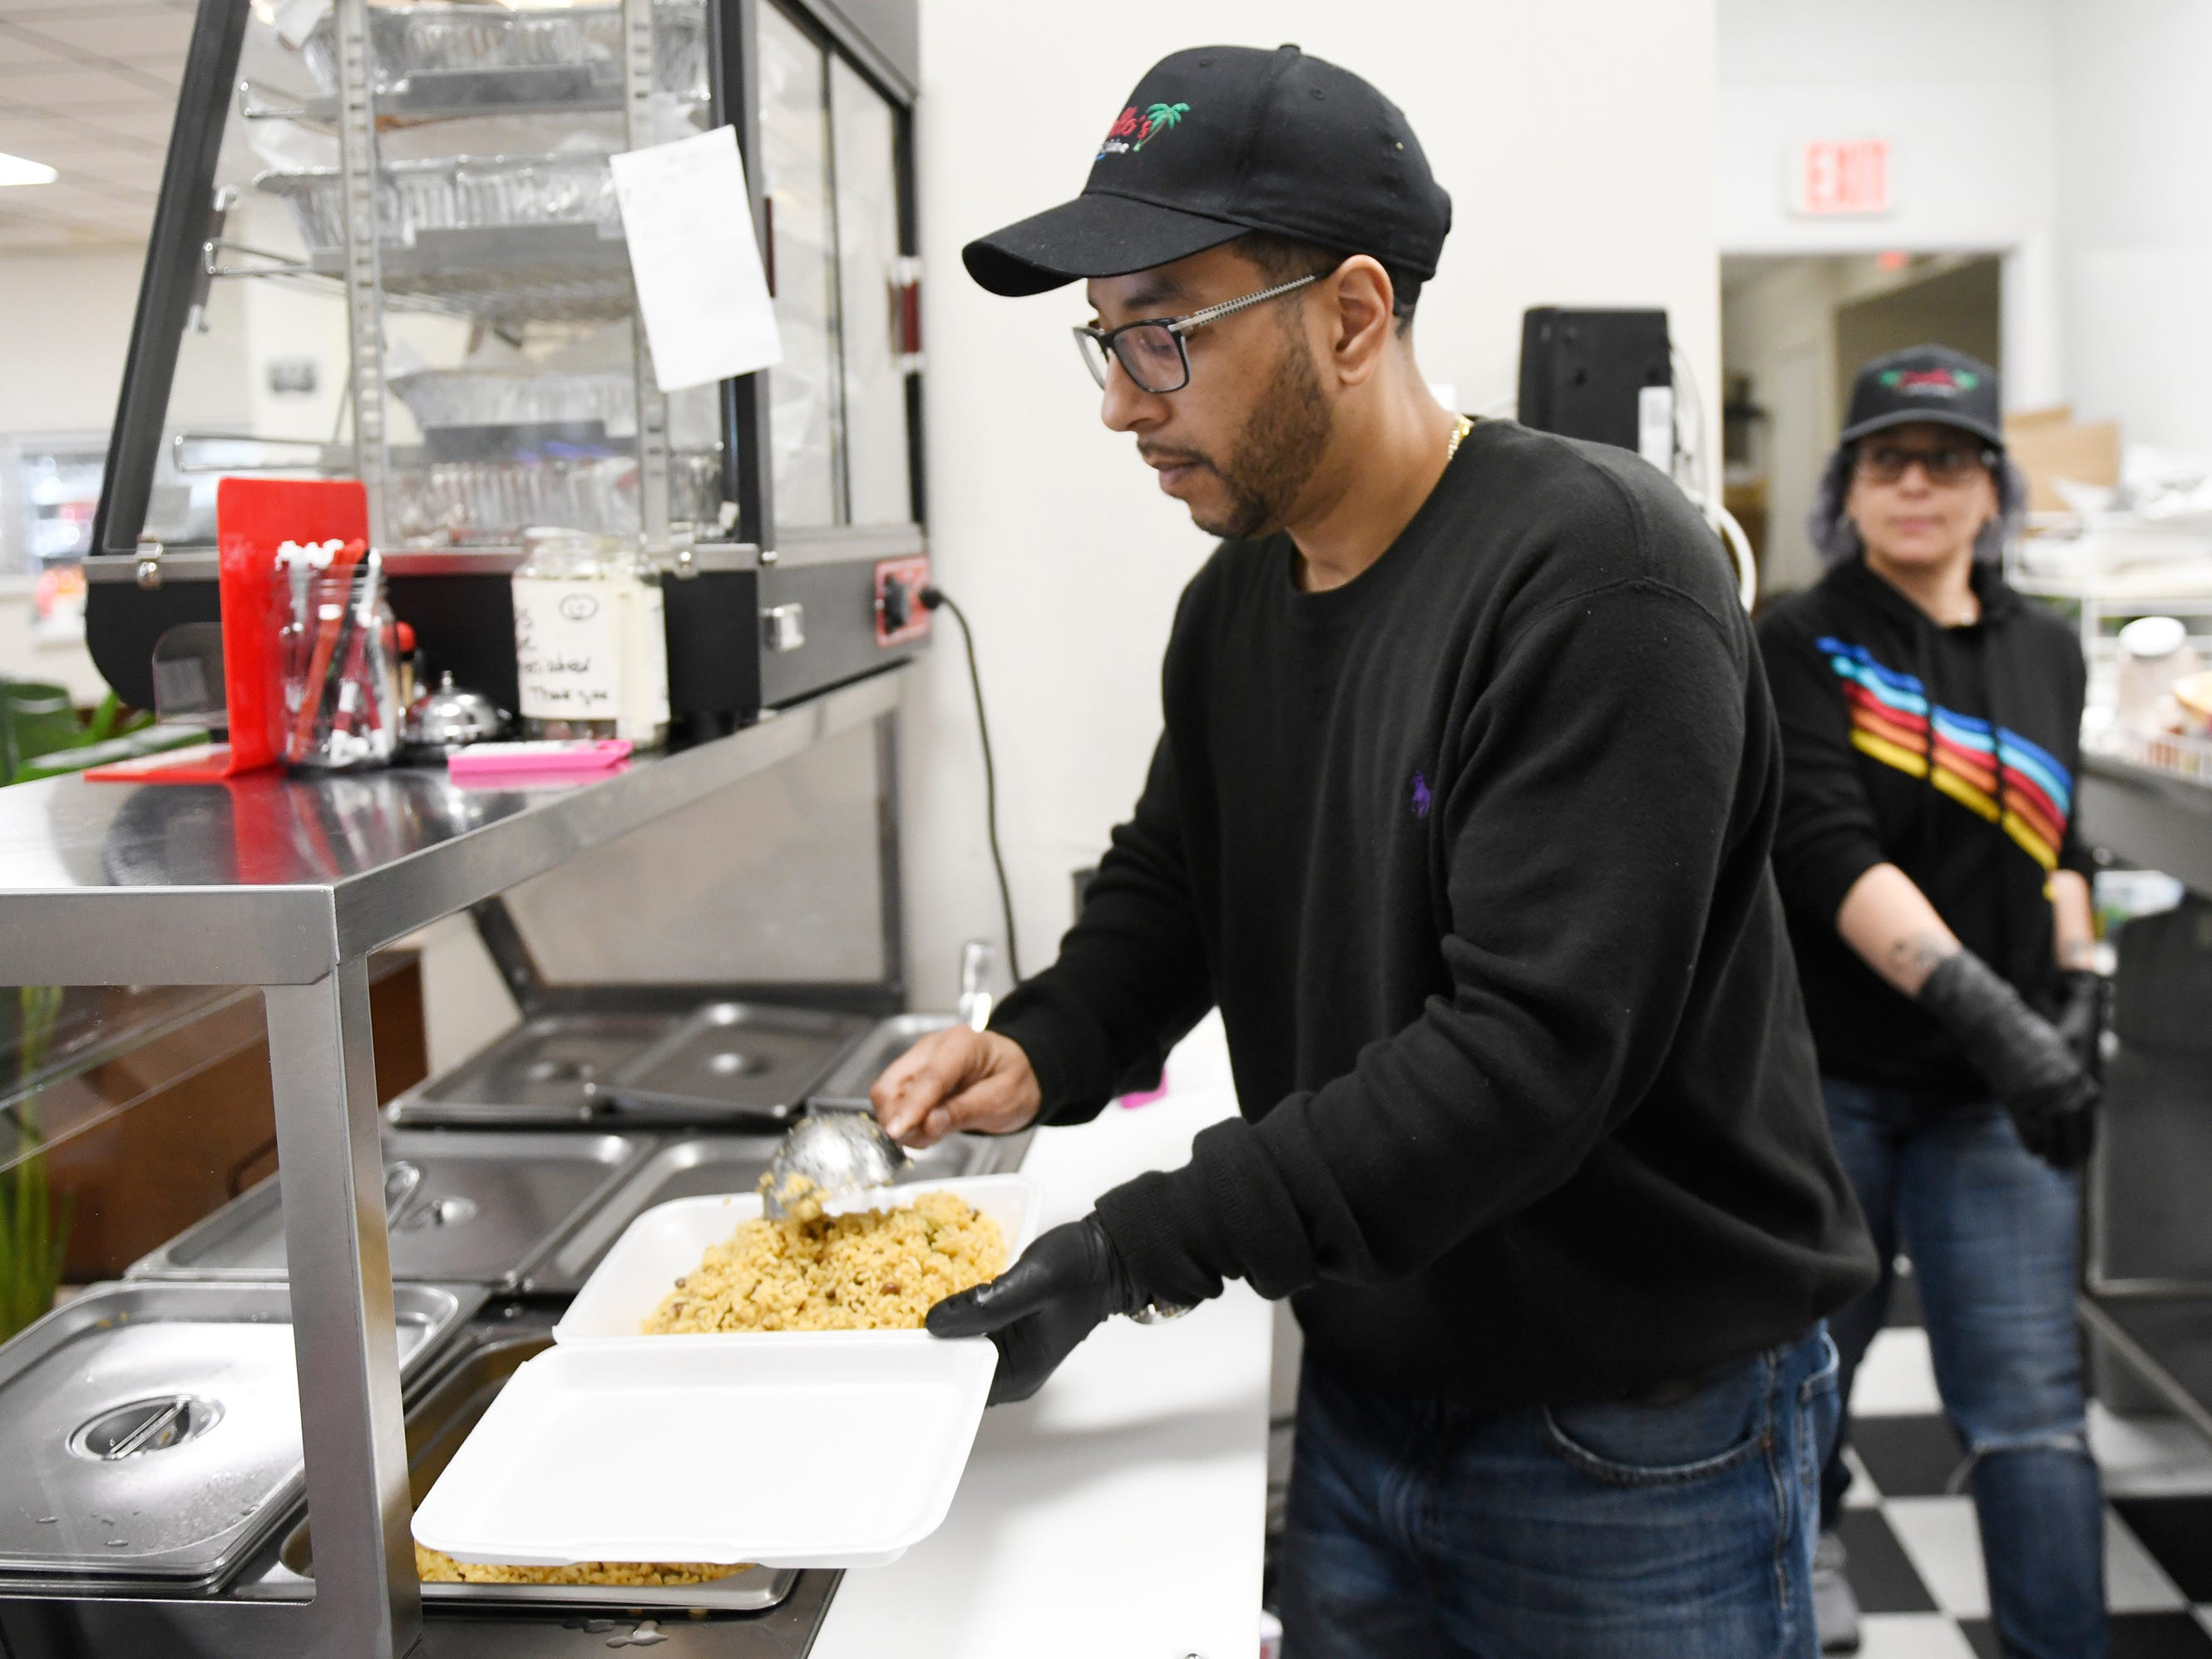 Criollo's Latin Cuisine owner Scott Guzman prepares an order for take out on Wednesday, March 27, 2019. The restaurant is located inside the EZ-Mart on West Main Street in Millville.